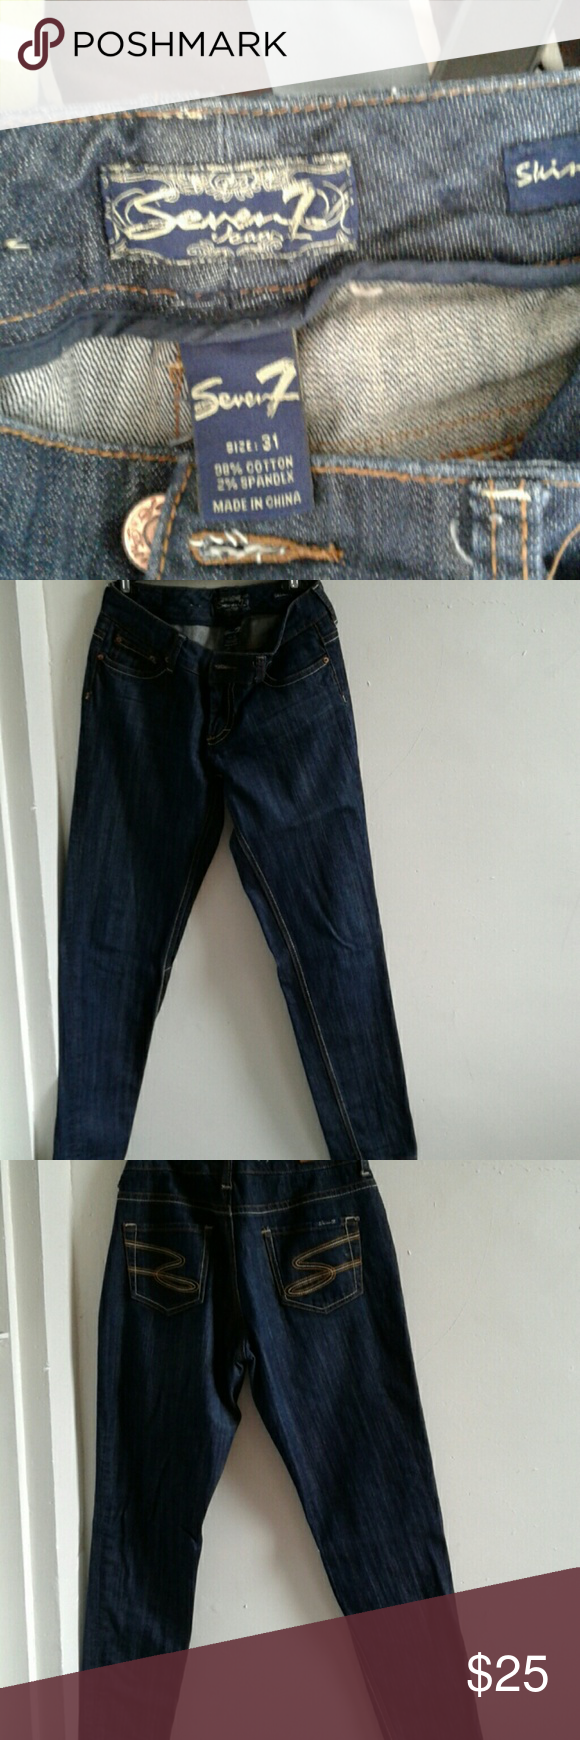 Jeans Used good condition Seven7 Jeans Skinny